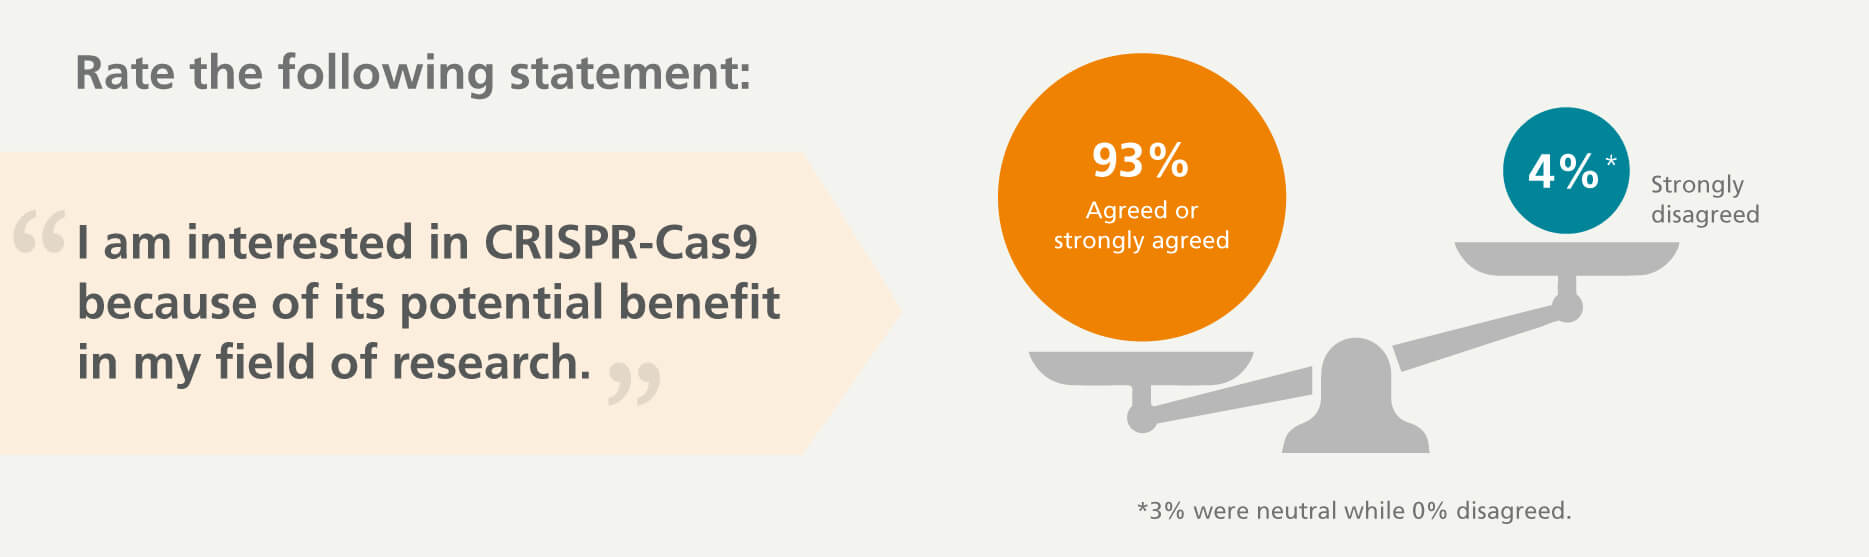 93% of survey respondents agree or strongly agree that CRISPR-Cas9 can potentially benefit their research.